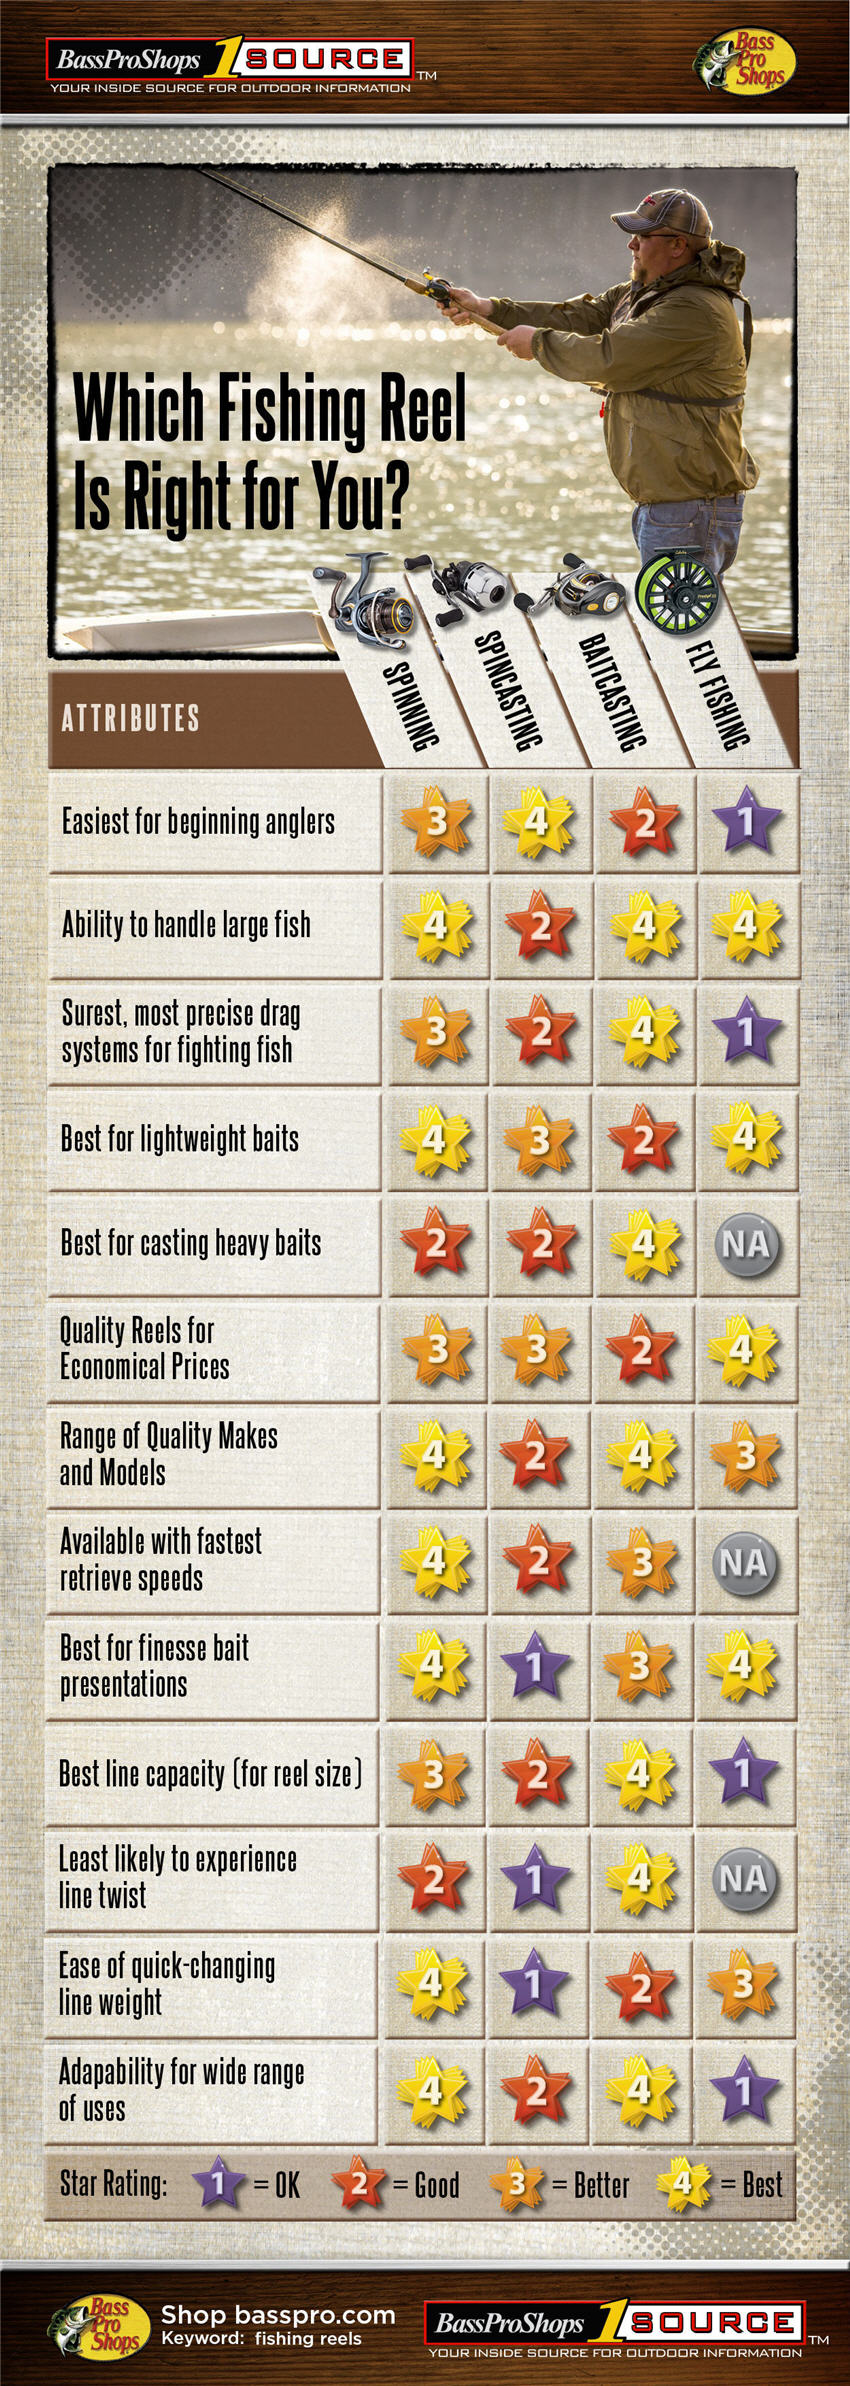 "4 Fishing reels rated ""ok, good, better, best"" by attributes infographic"